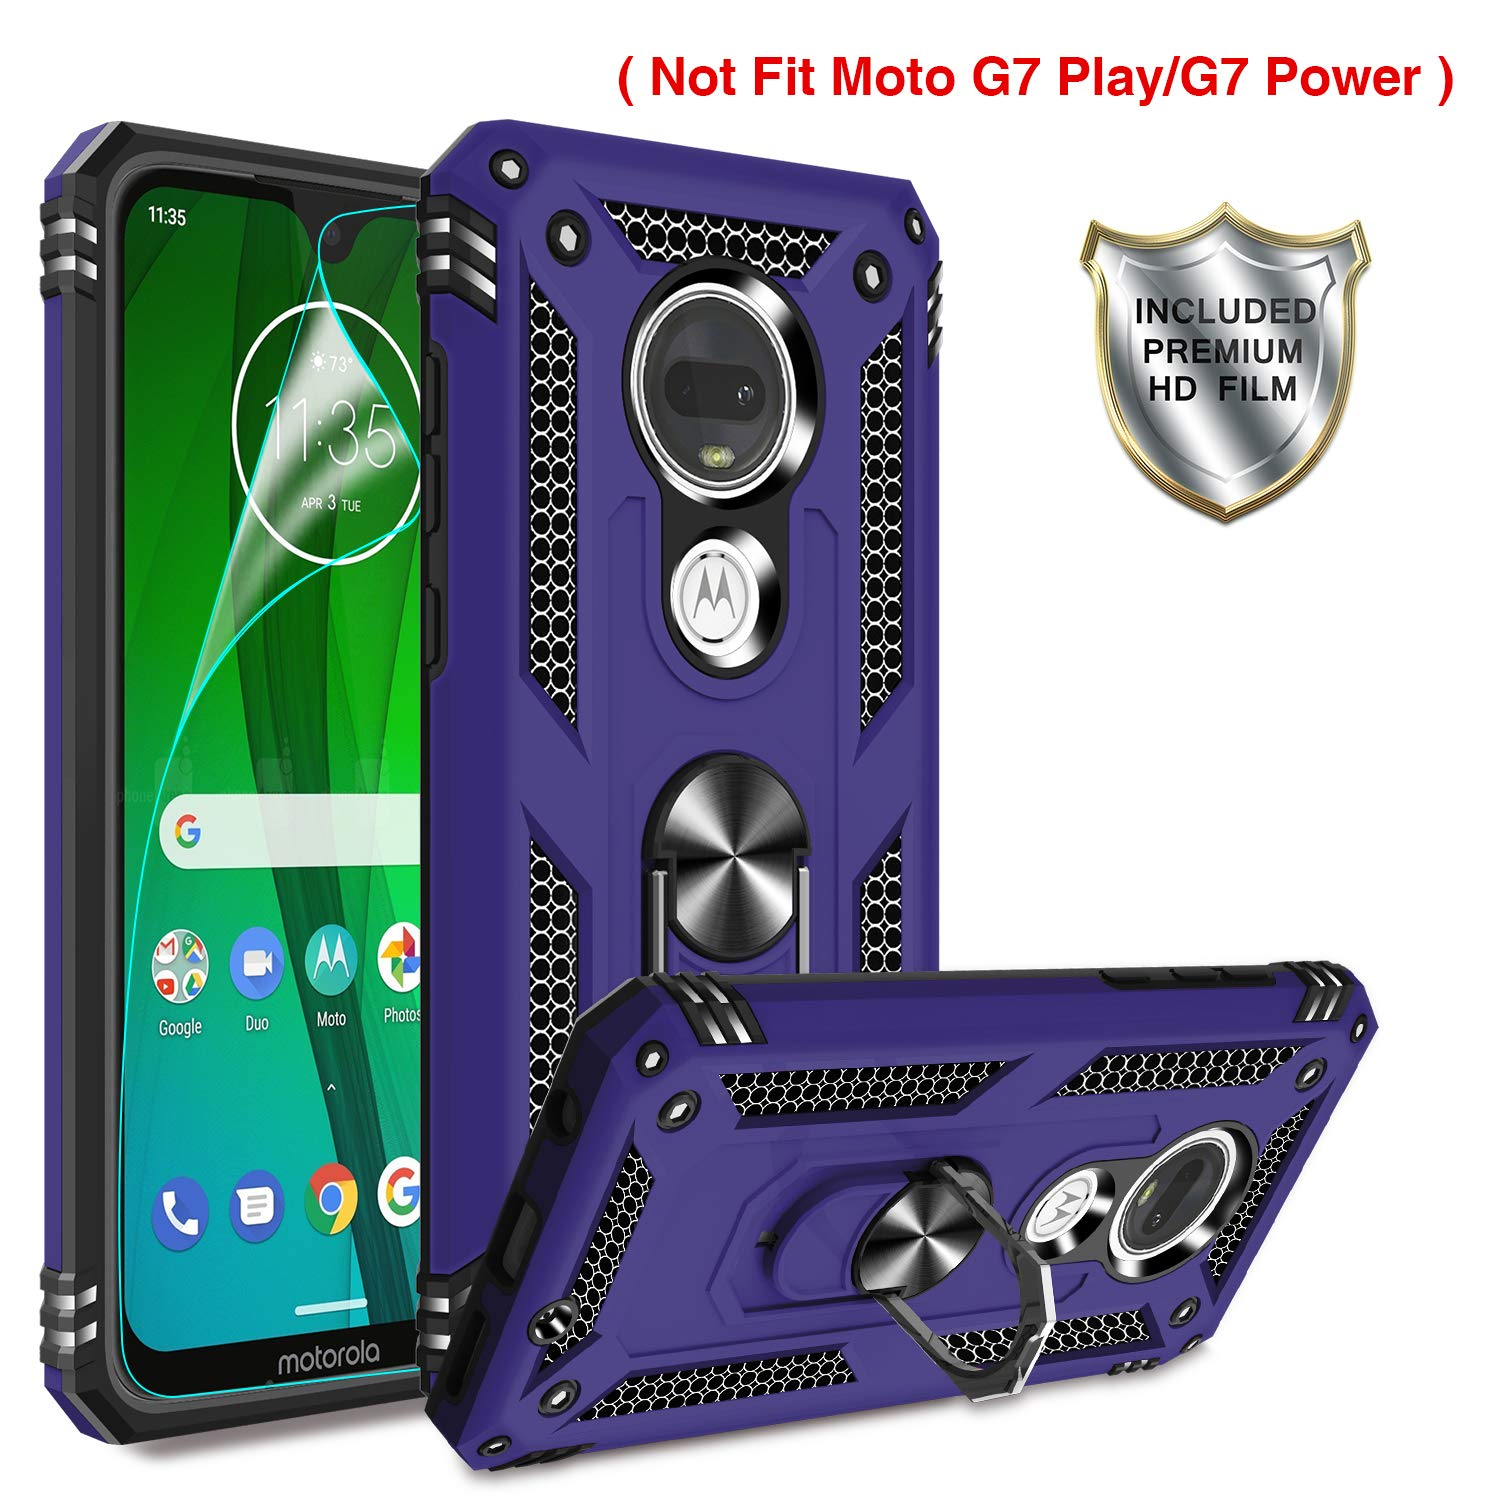 Gritup Moto G7 Phone Case, Moto G7 Plus Cases with HD Screen Protector, 360 Degree Rotating Metal Ring Holder Kickstand Armor Anti-Scratch Bracket Cover Phone Case for Motorola Moto G7 Purple